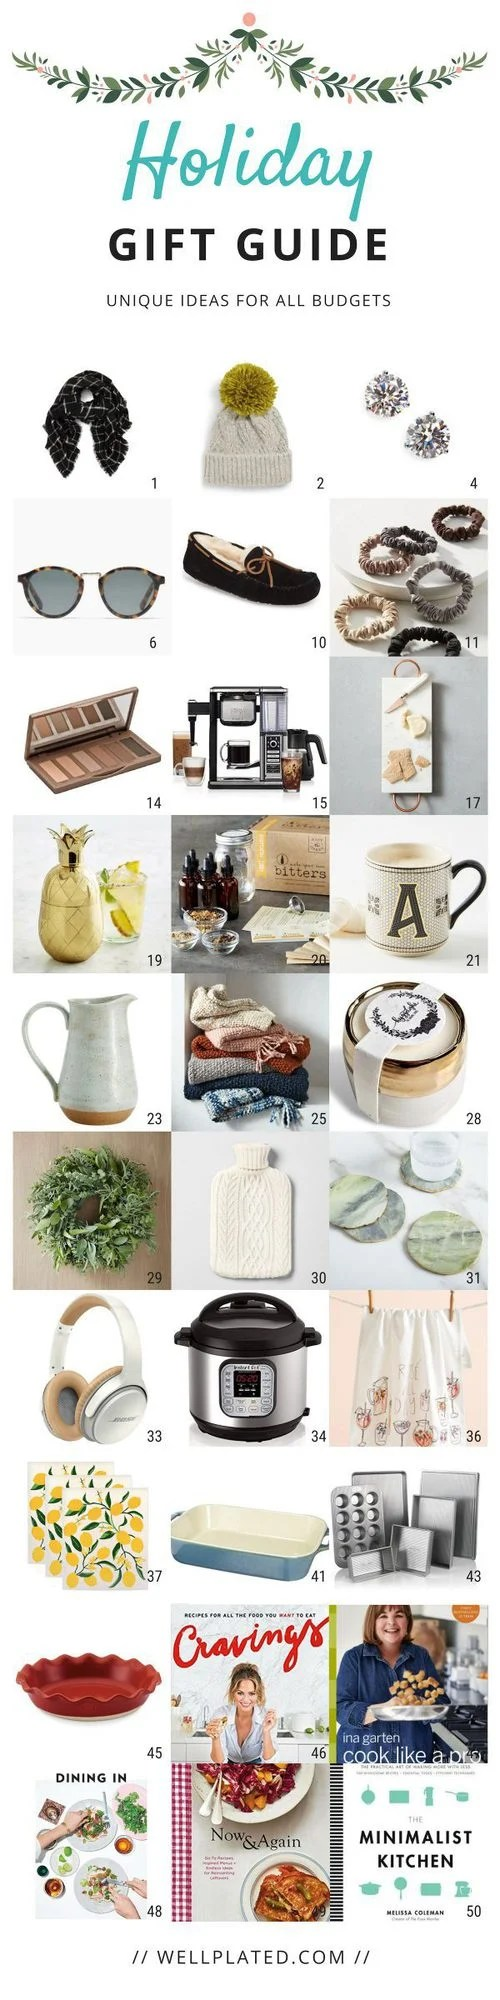 Unique Holiday Gift Ideas for Women! The best Christmas gifts for mom, girls, coworkers, and best friends. Includes stocking stuffers and ideas for all budgets from cheap to higher end.